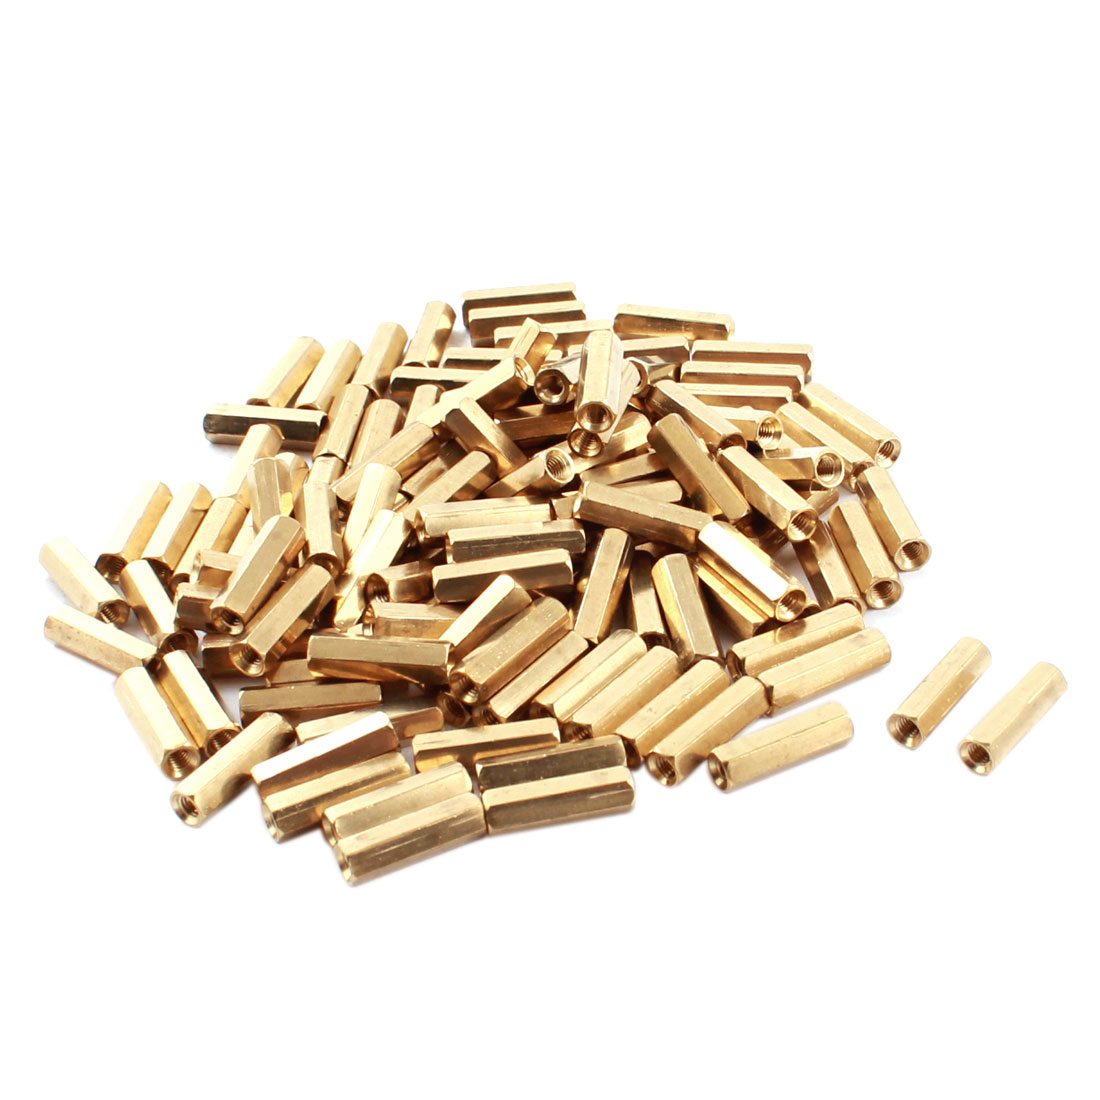 120 Pcs Dual Ends Female Thread Gold Tone Brass Hex Head PCB Standoff Spacer M3x16mm